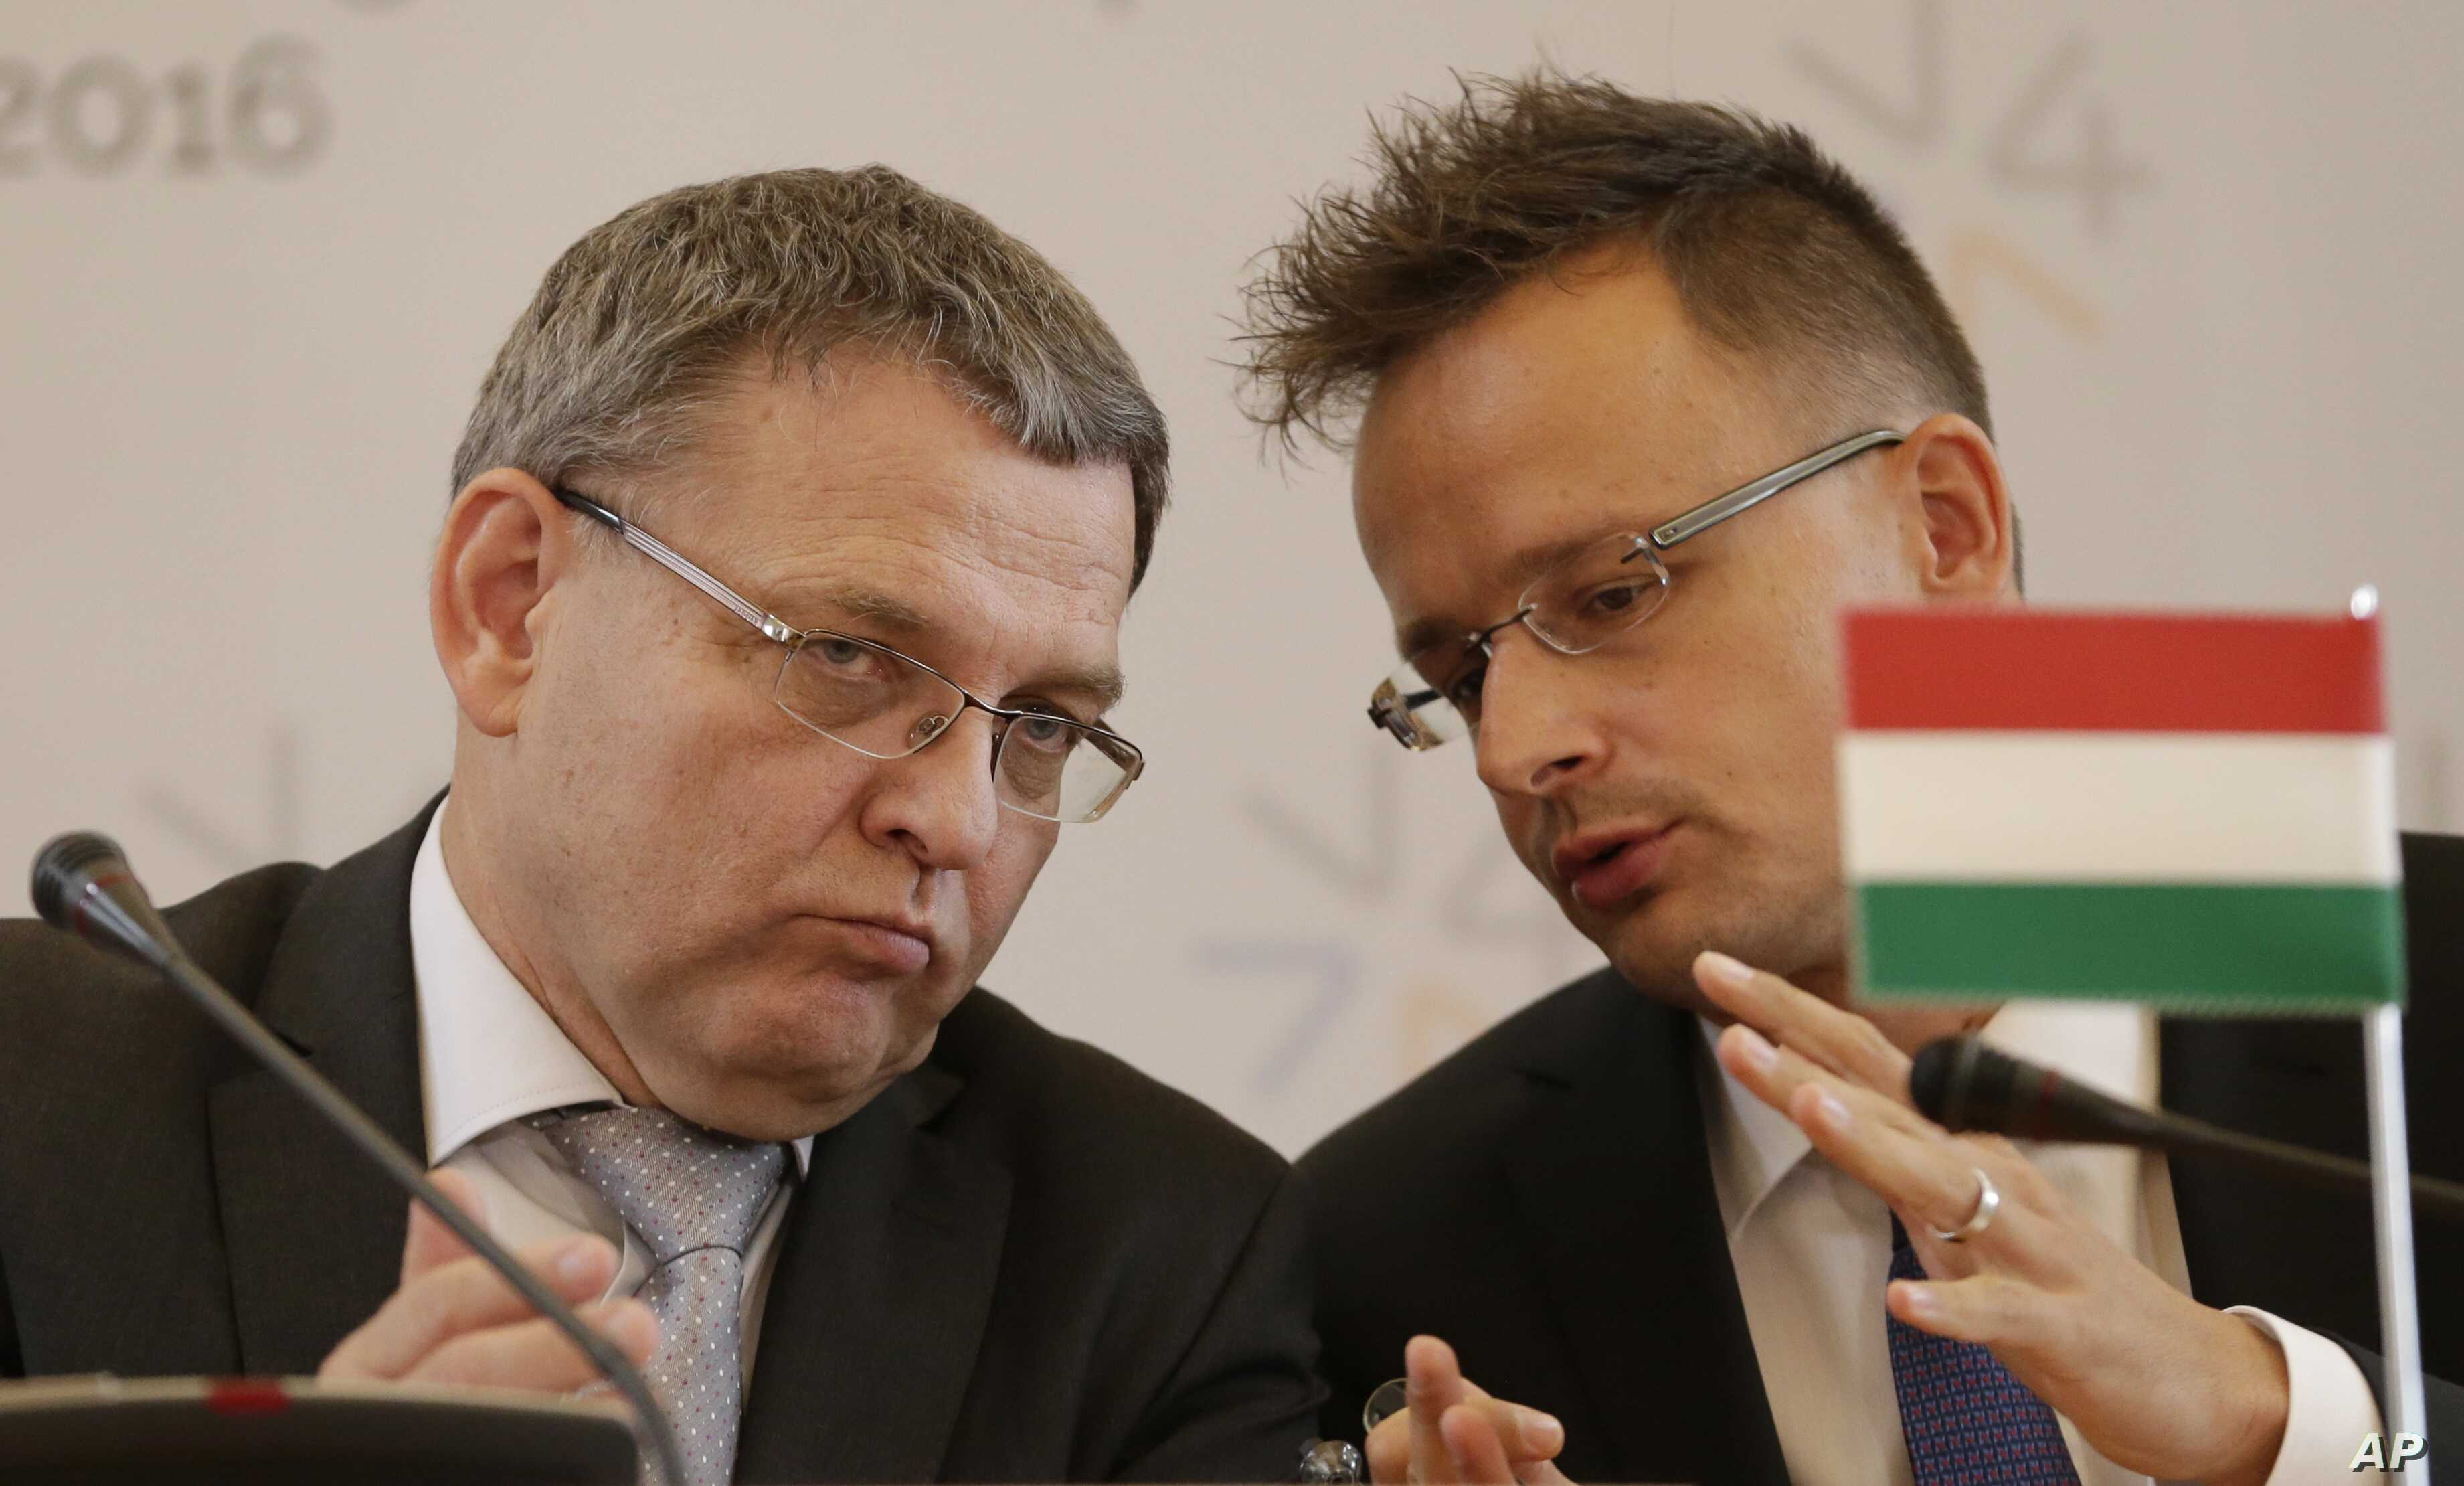 Czech Republic's foreign minister Lubomir Zaoralek, left, talks to Hungary's foreign minister  Peter Szijjarto, right, during a press conference as the Visegrad Group foreign ministers meet their counterparts from Germany and Luxembourg to talk about...